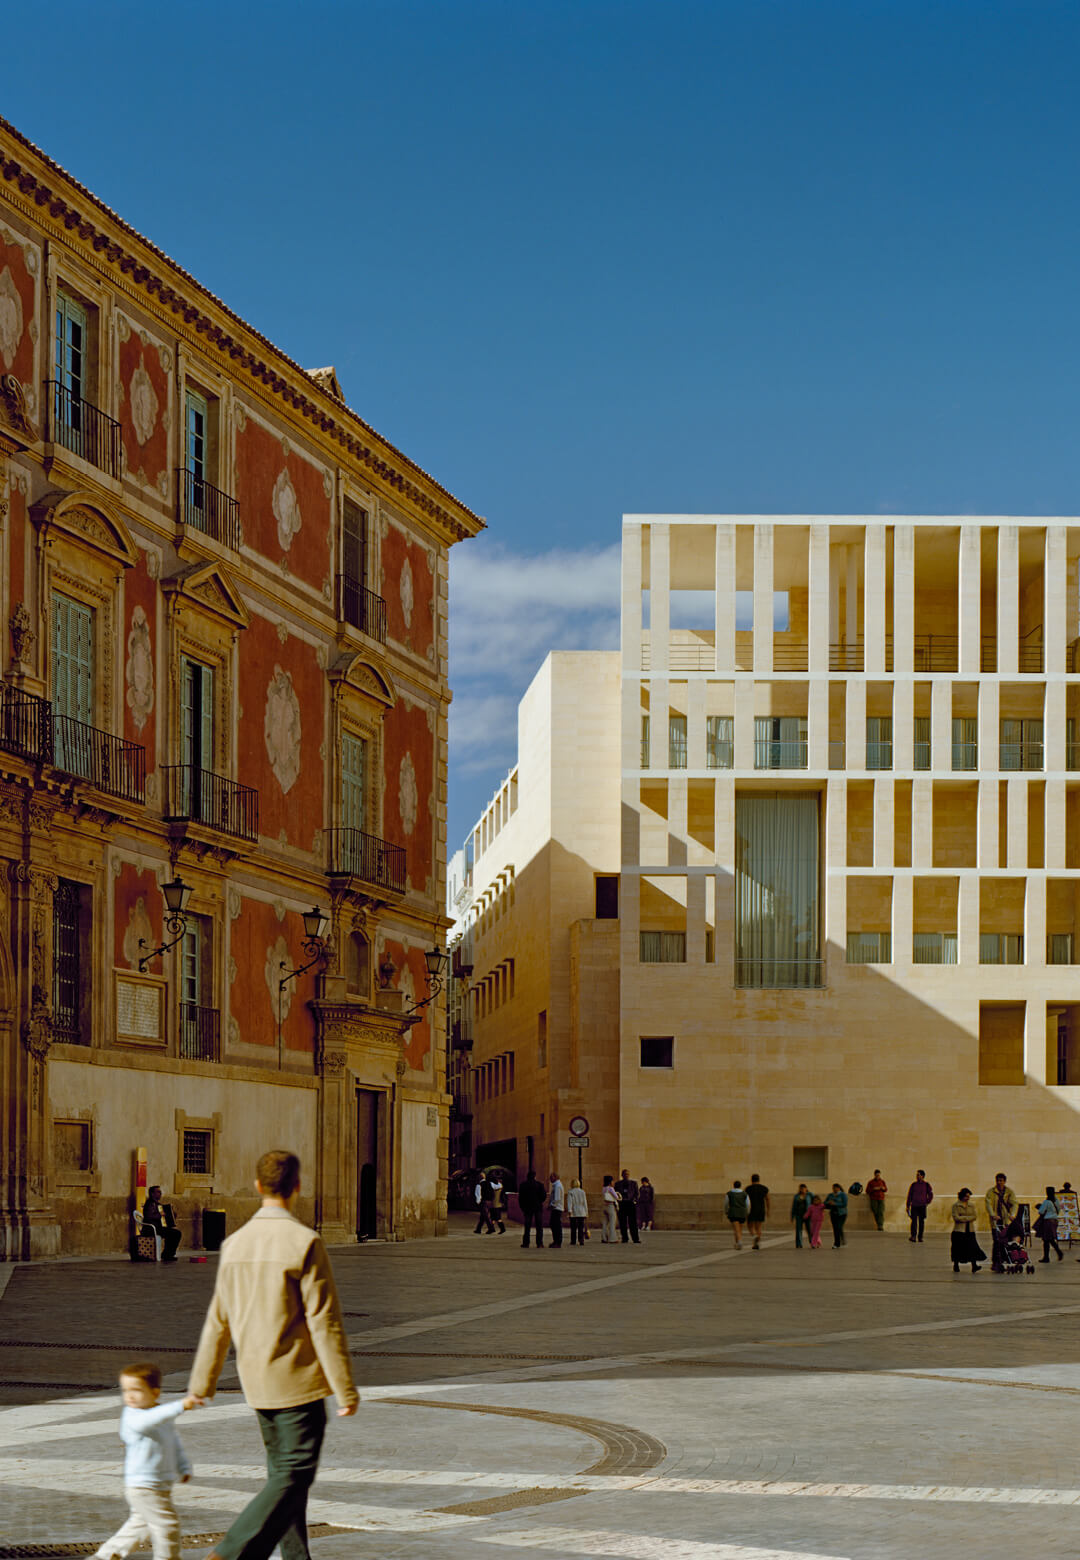 Murcia City Hall, Murcia, Spain, 1991-98 by Rafael Moneo | Vladimir Belogolovsky | STIRworld